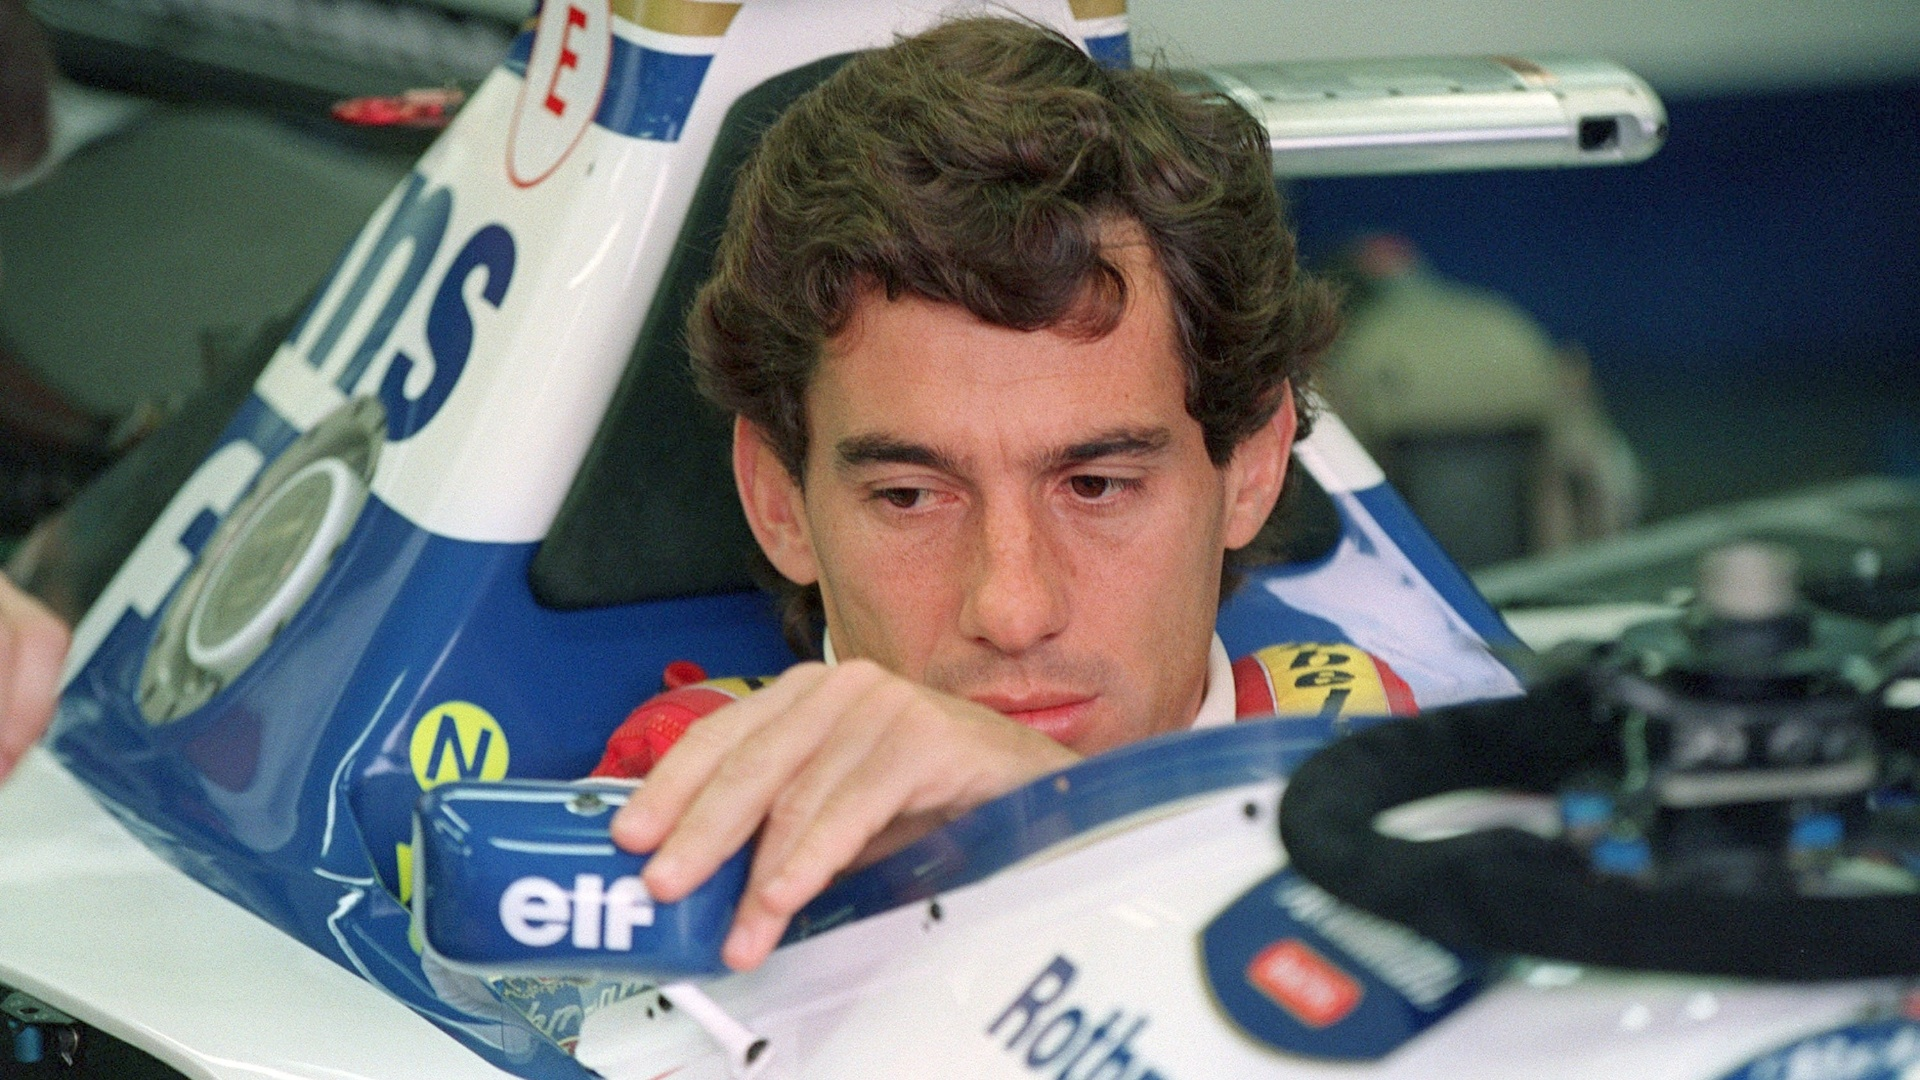 Ayrton Senna  fotografado antes do GP de mola, no qual ele morreu ao sofrer um acidente (01/05/1994)